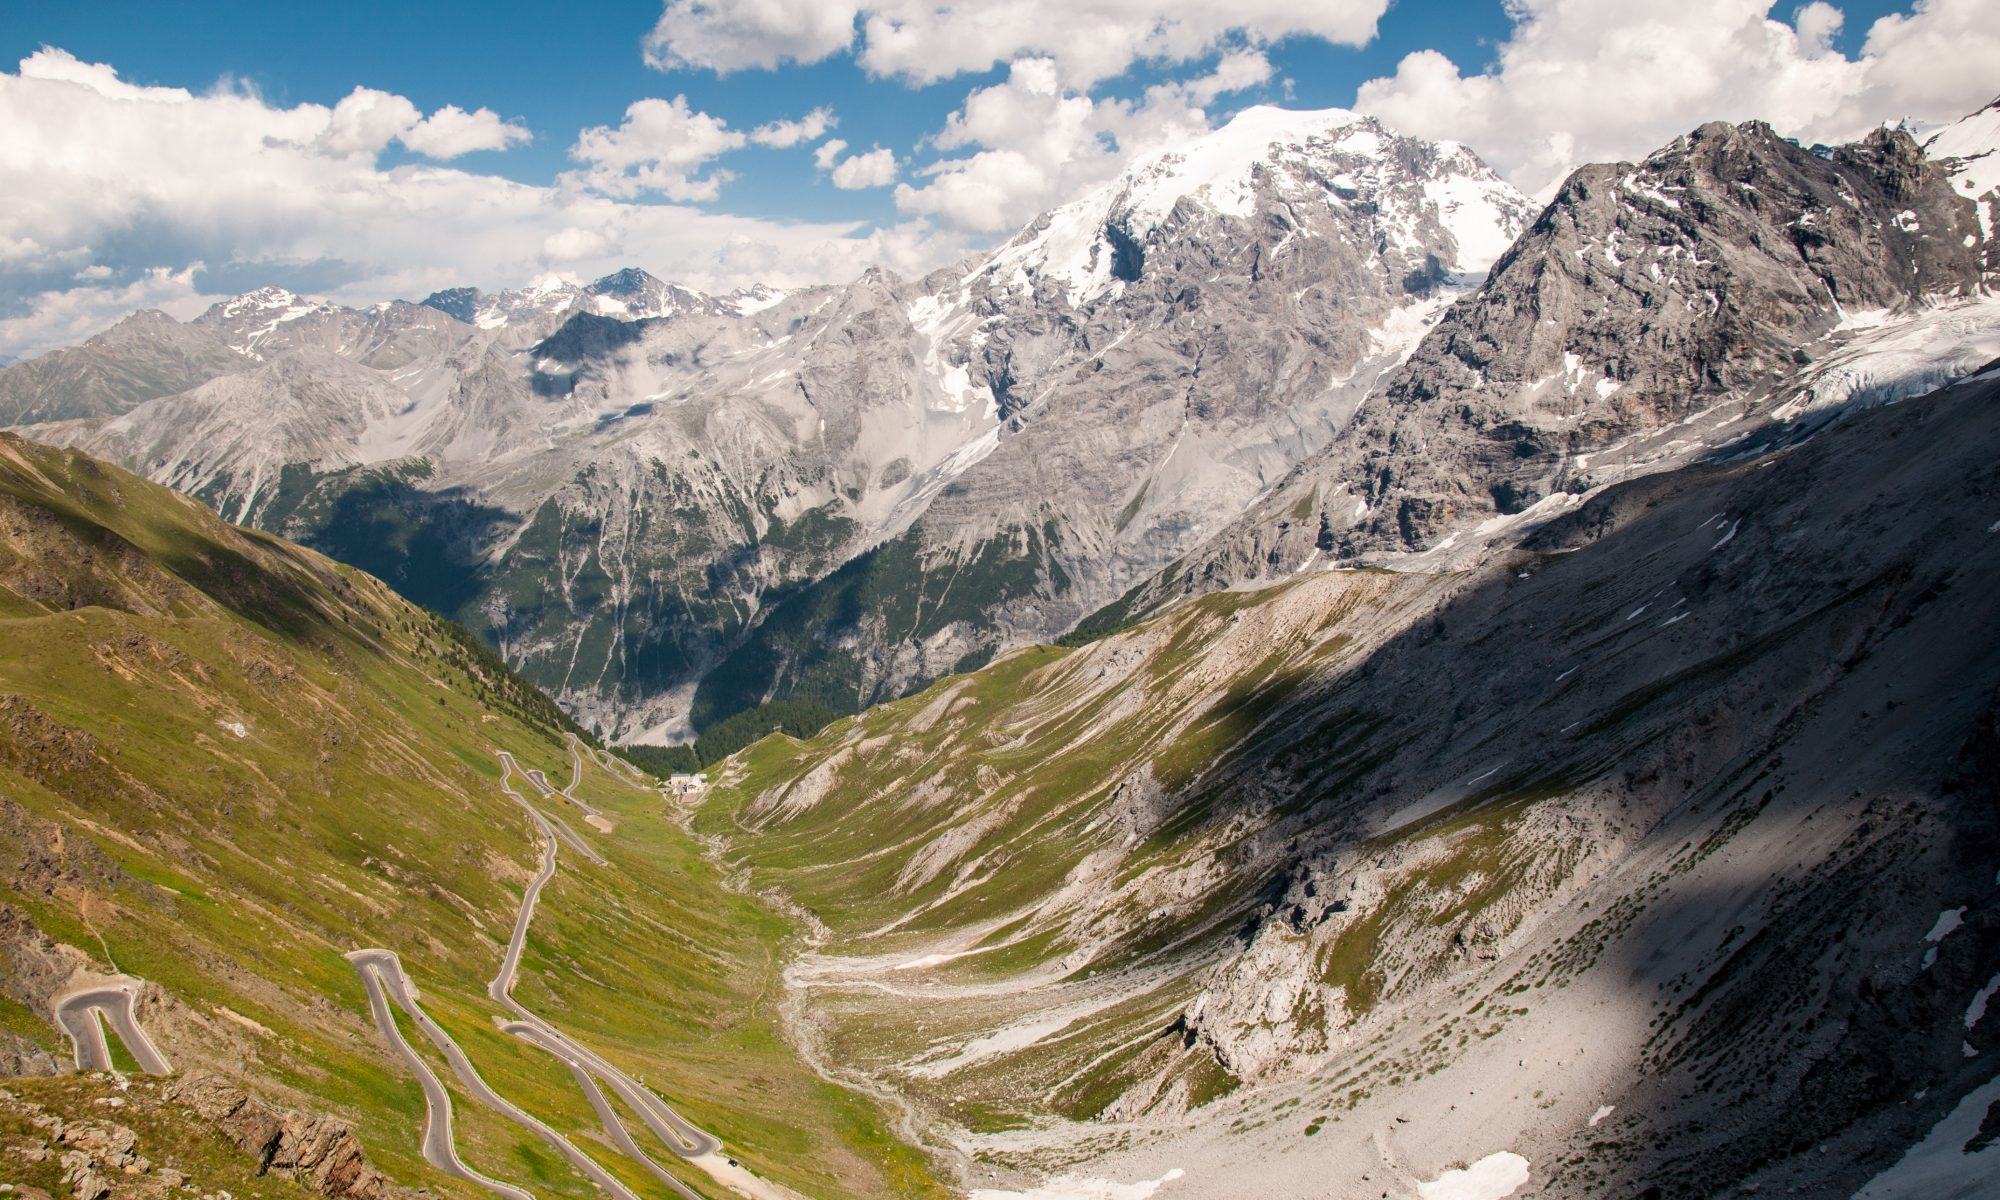 Opening of the Stelvio Pass - Passo dello Stelvio.